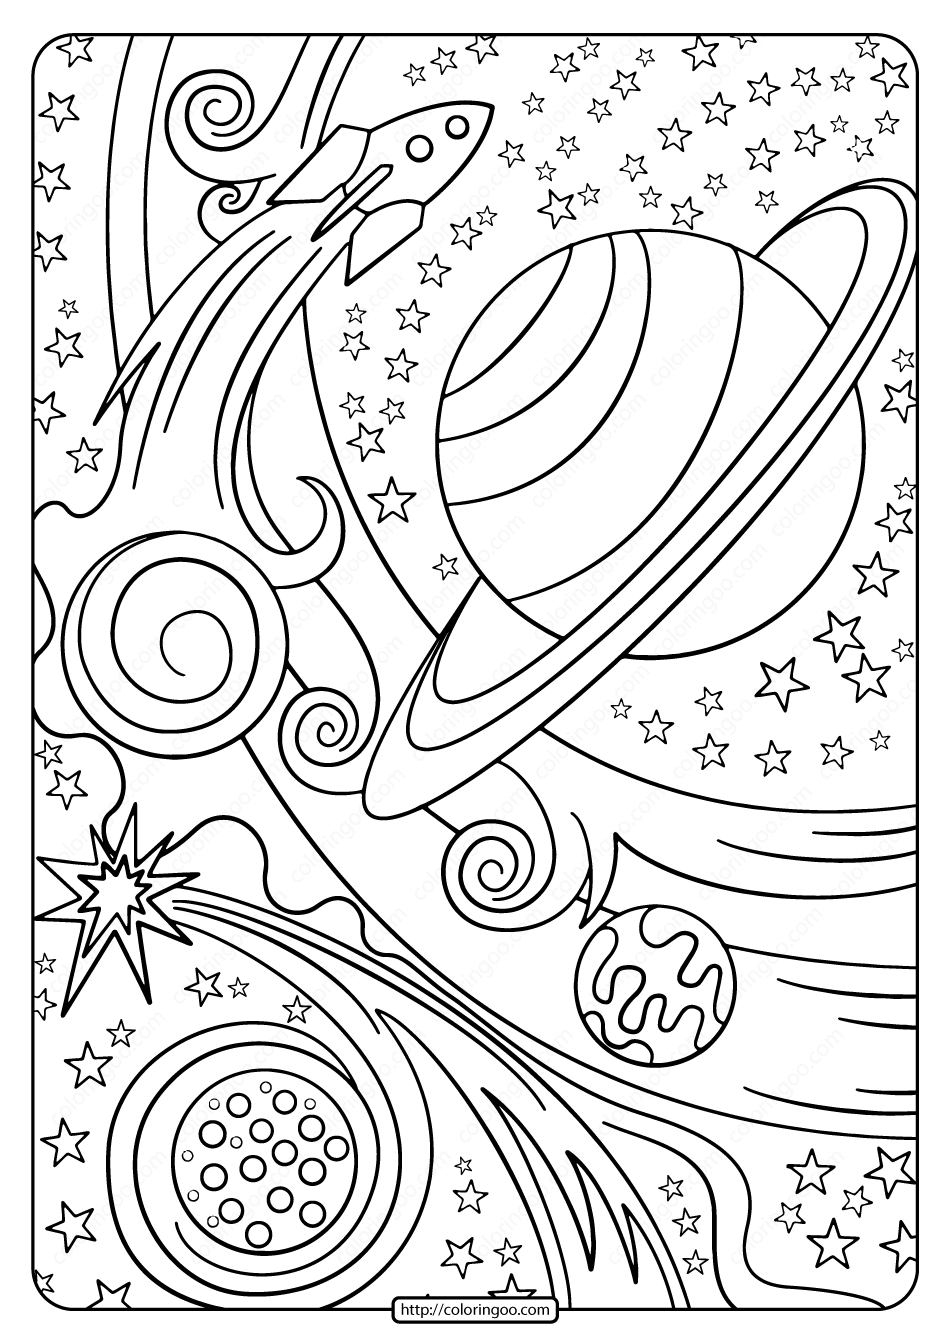 free downloadable coloring pages free printable raccoon coloring pages for kids coloring pages downloadable free